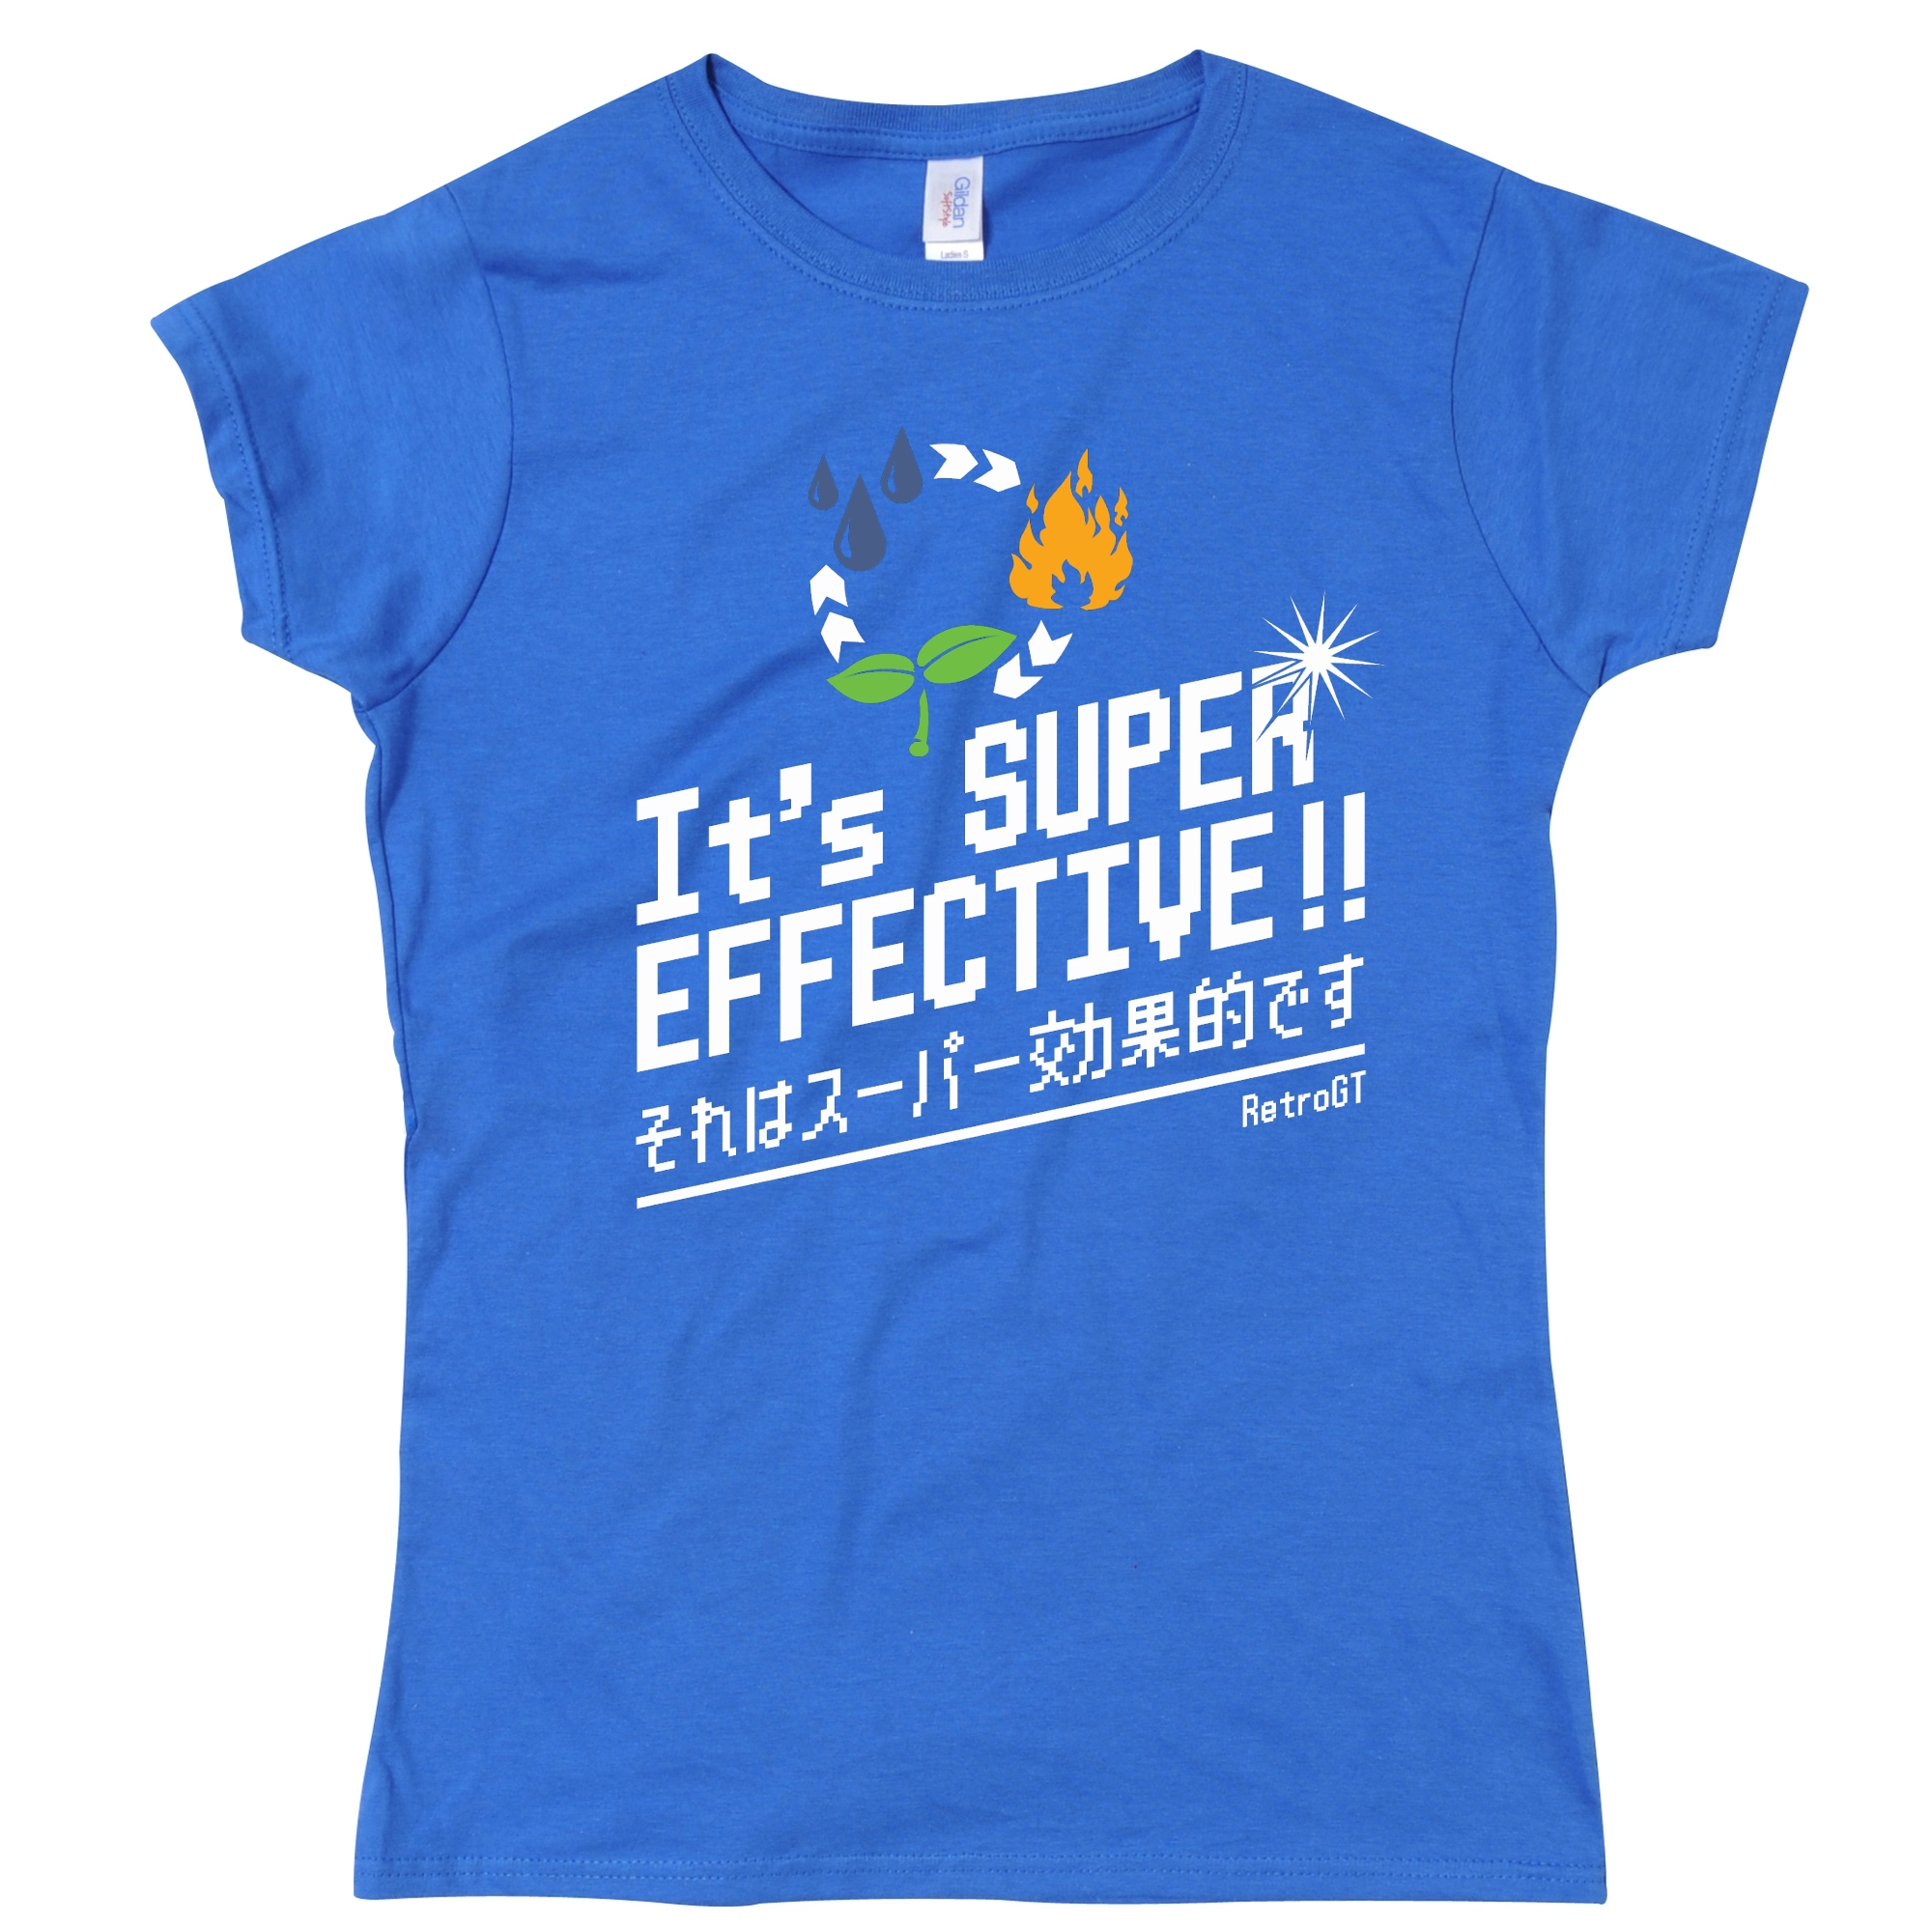 Photograph: It's Super Effective! Girls T-Shirt